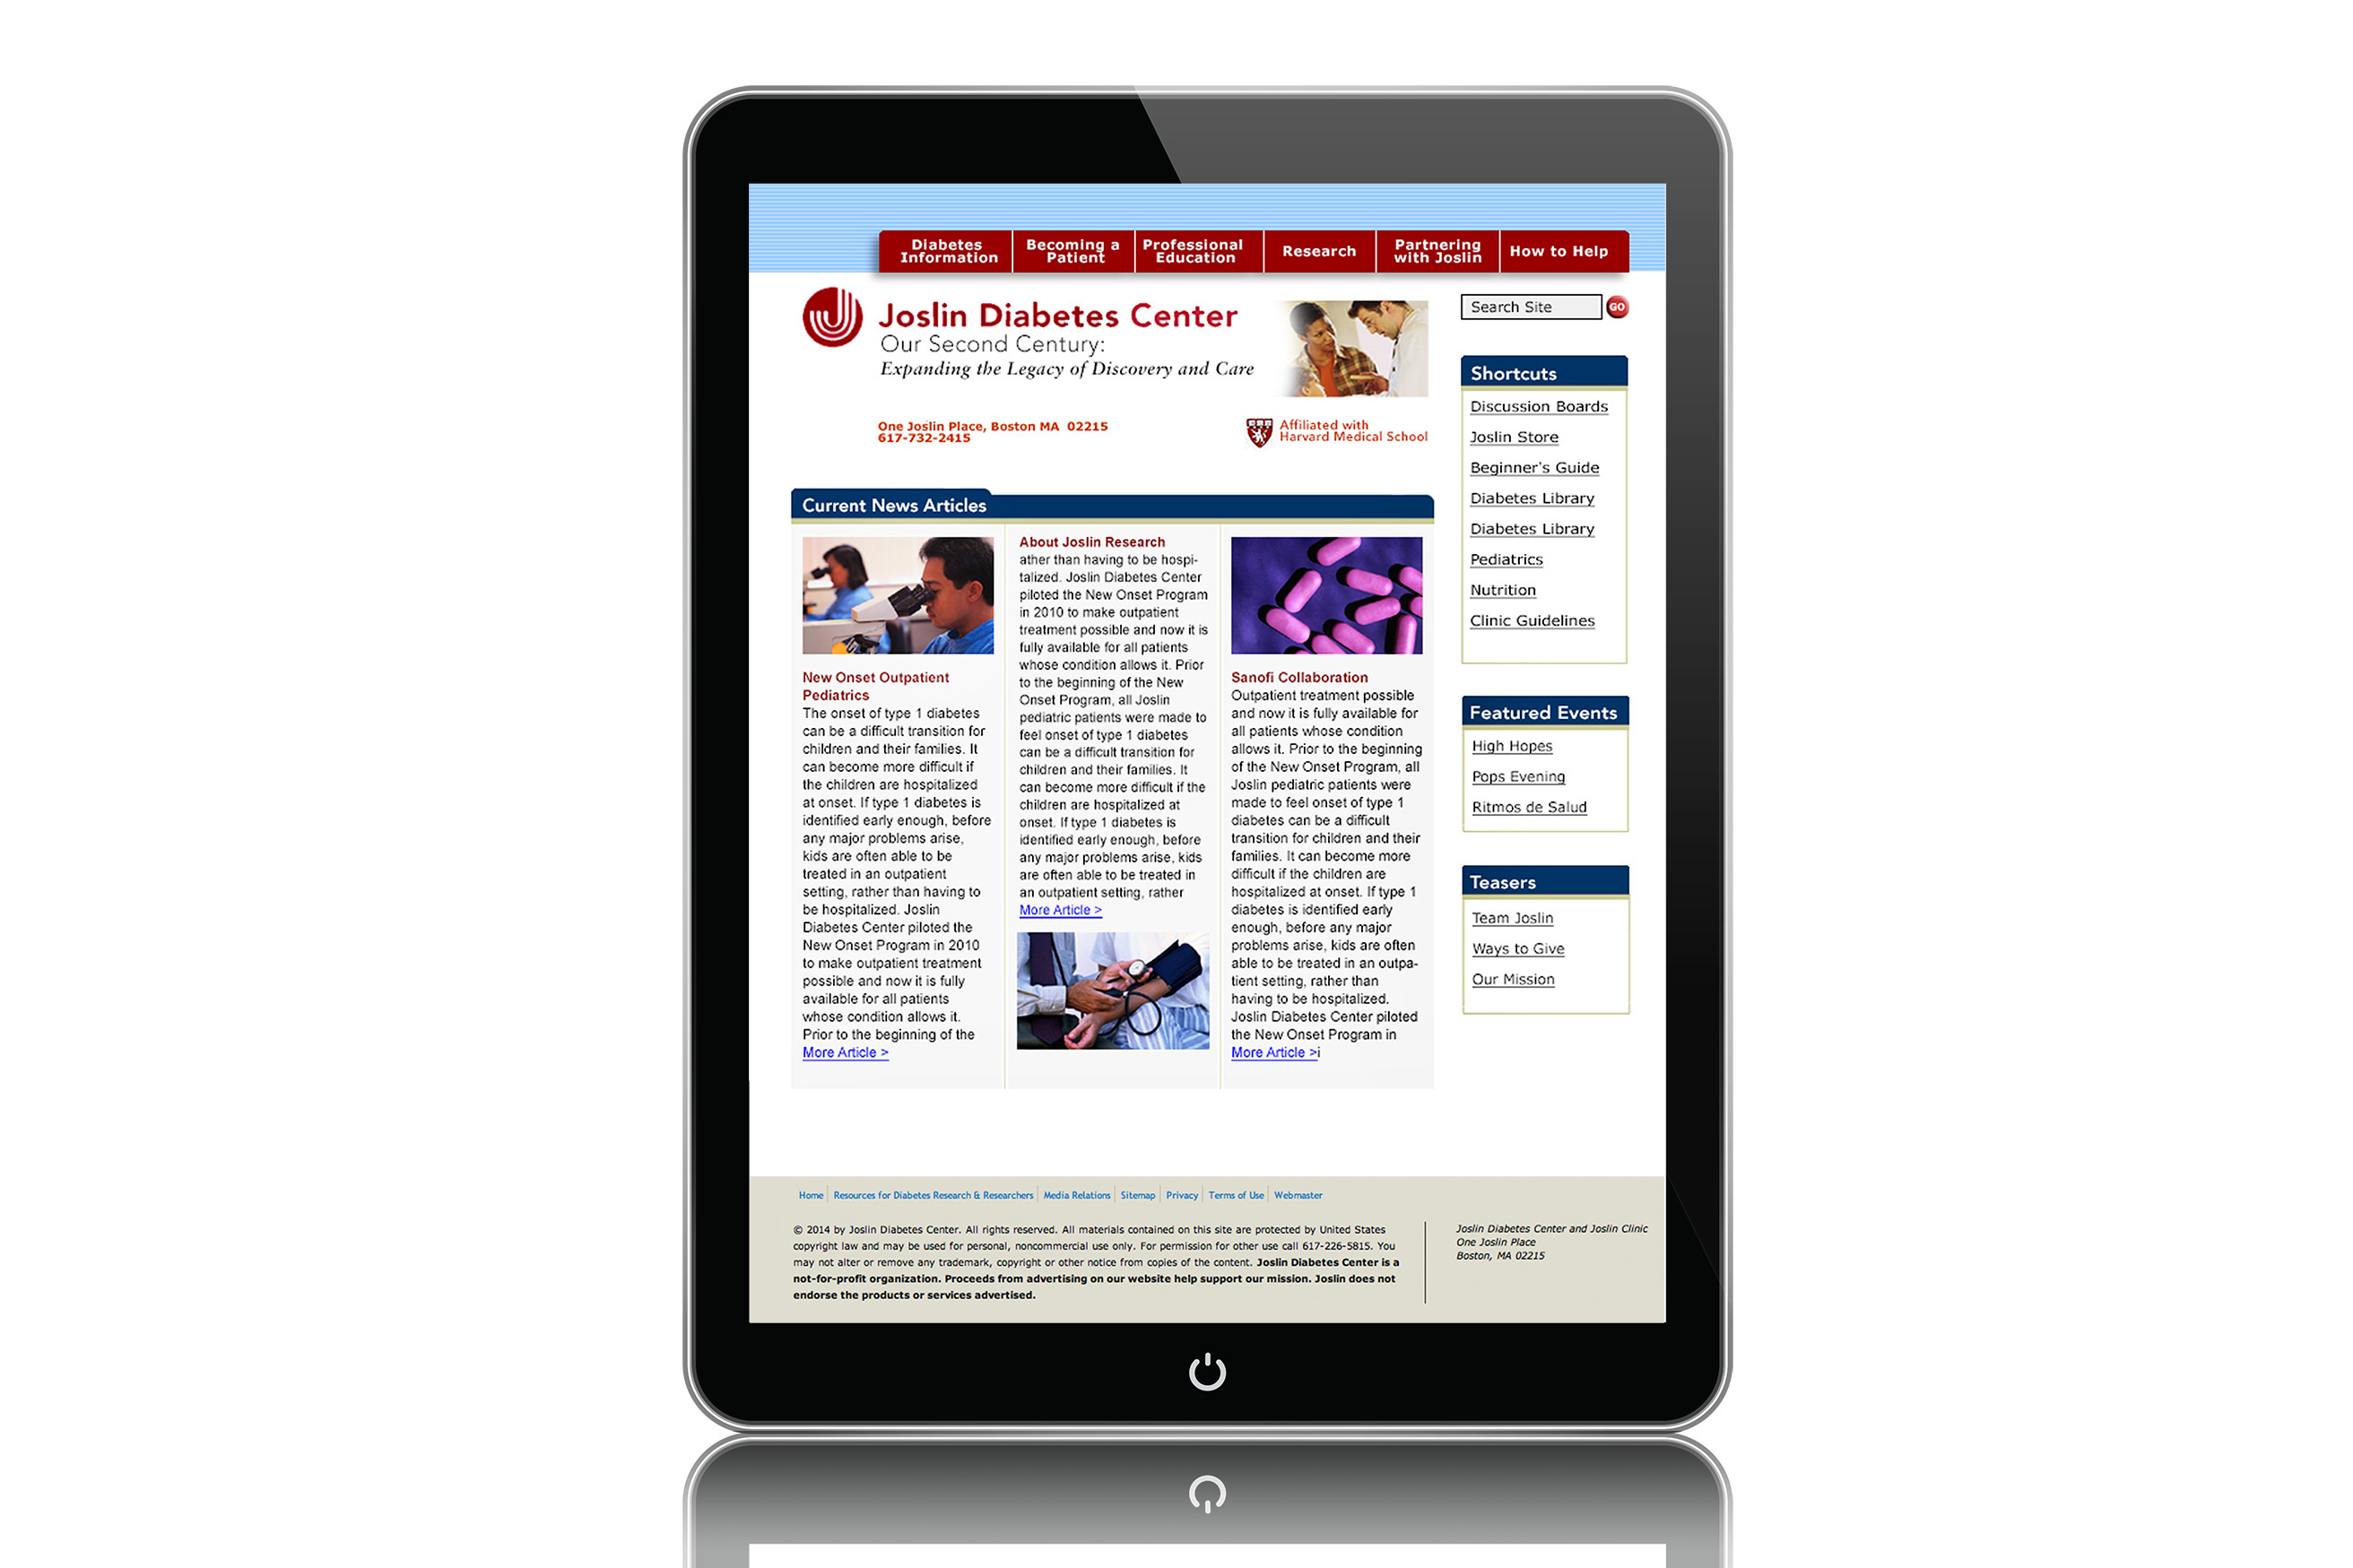 Joslin Diabetes Center Website